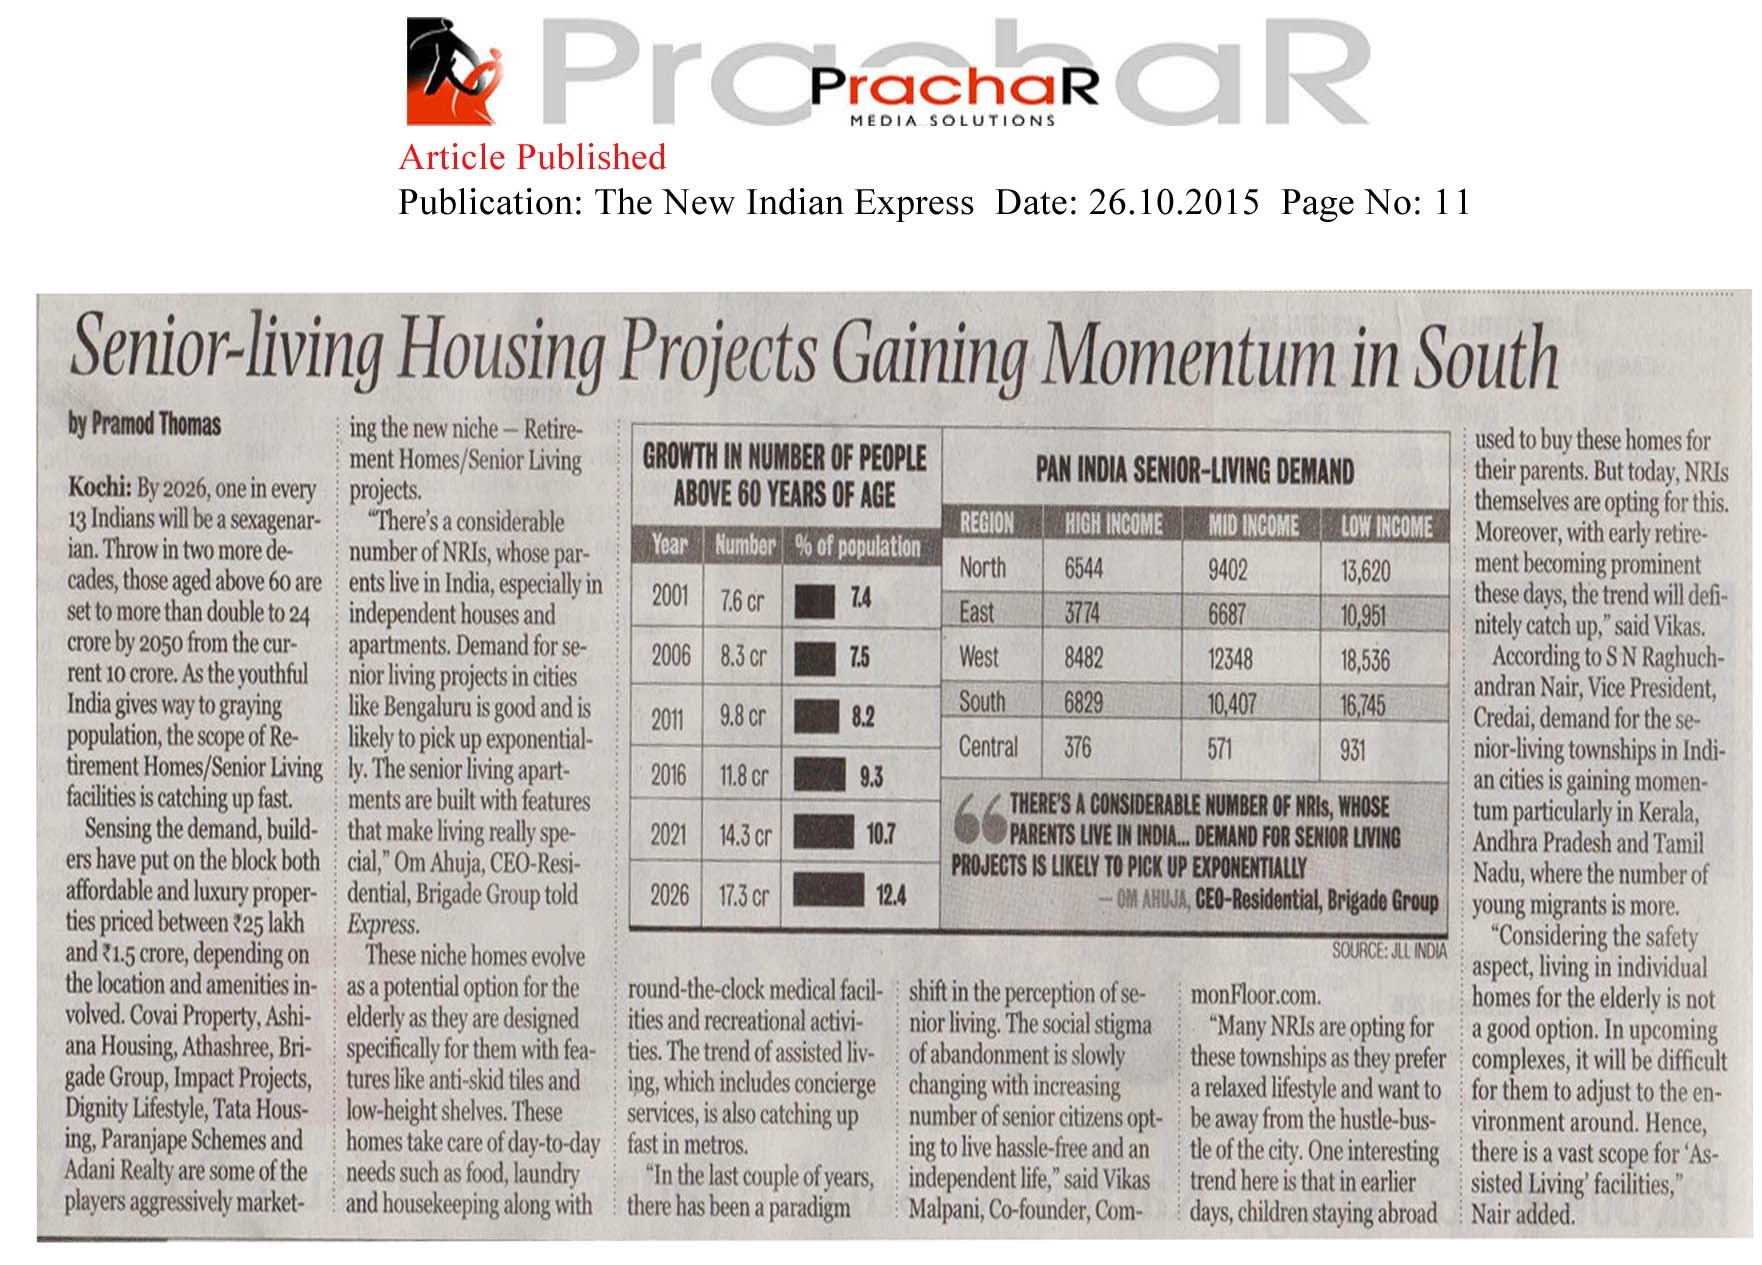 Senior-living housing projects gaining momentum in south - The New Indian Express